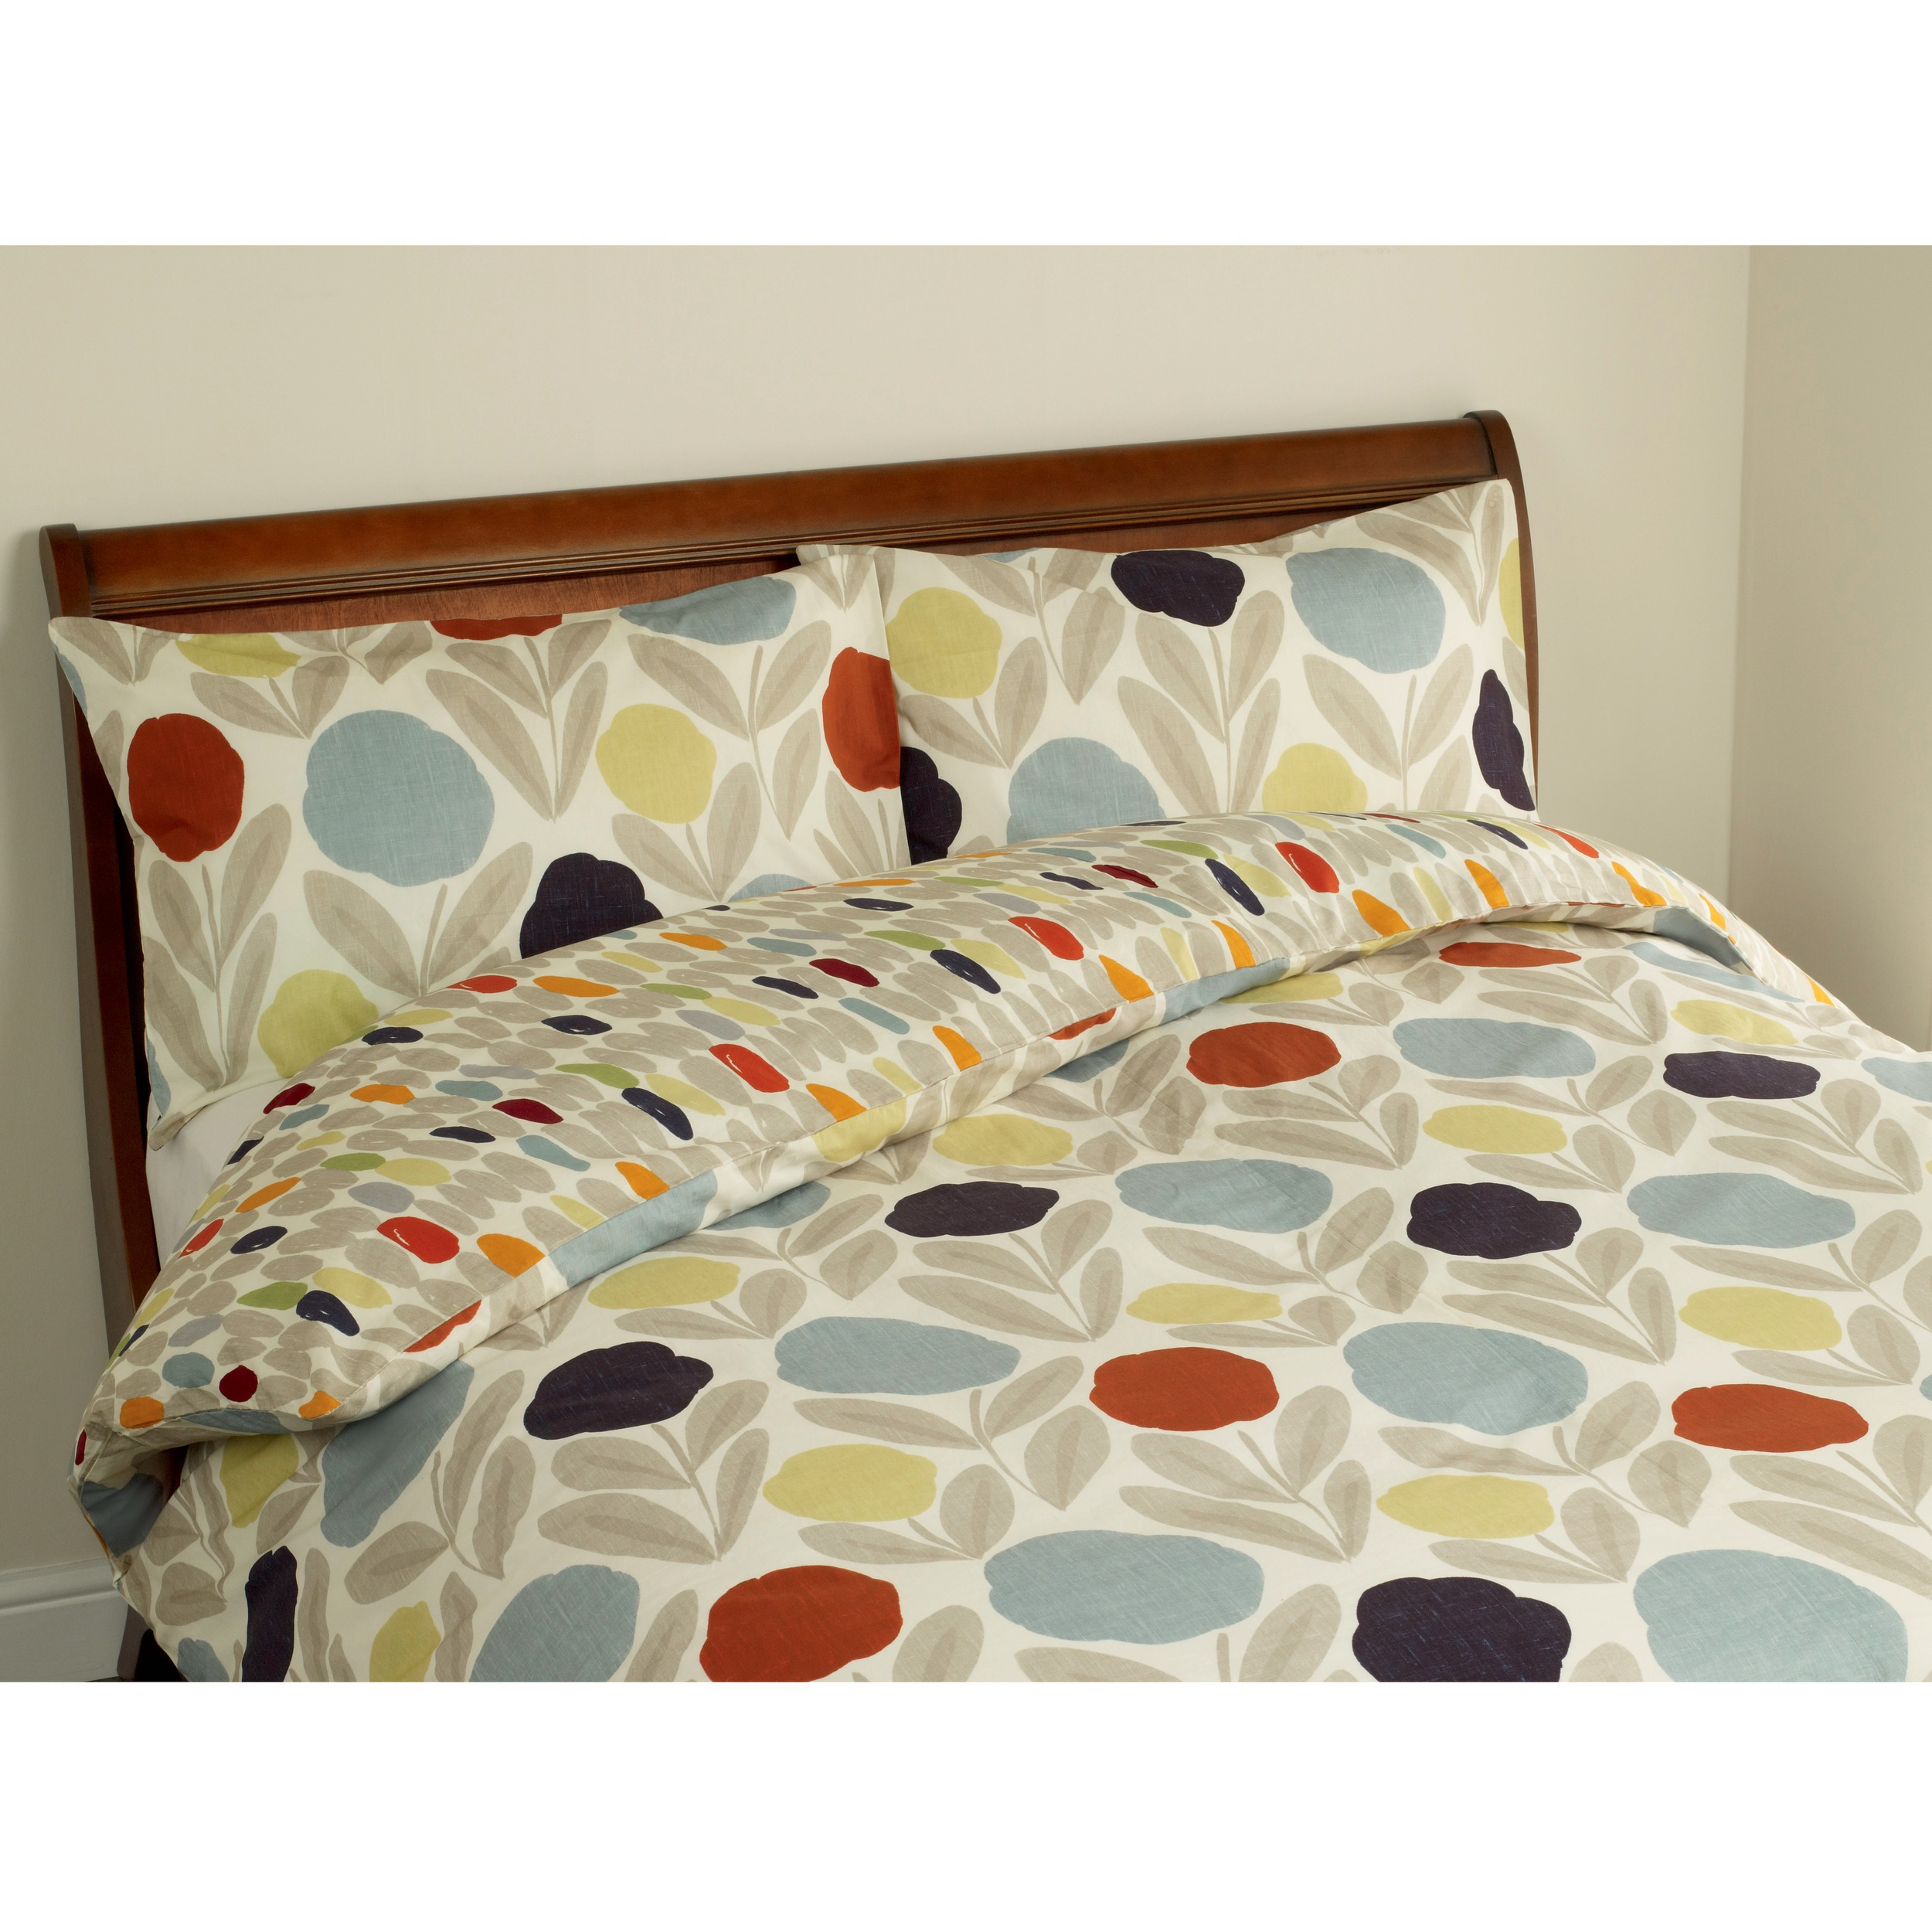 Serena cotton retro floral bedding by laura ashley bedding for bedding ideas